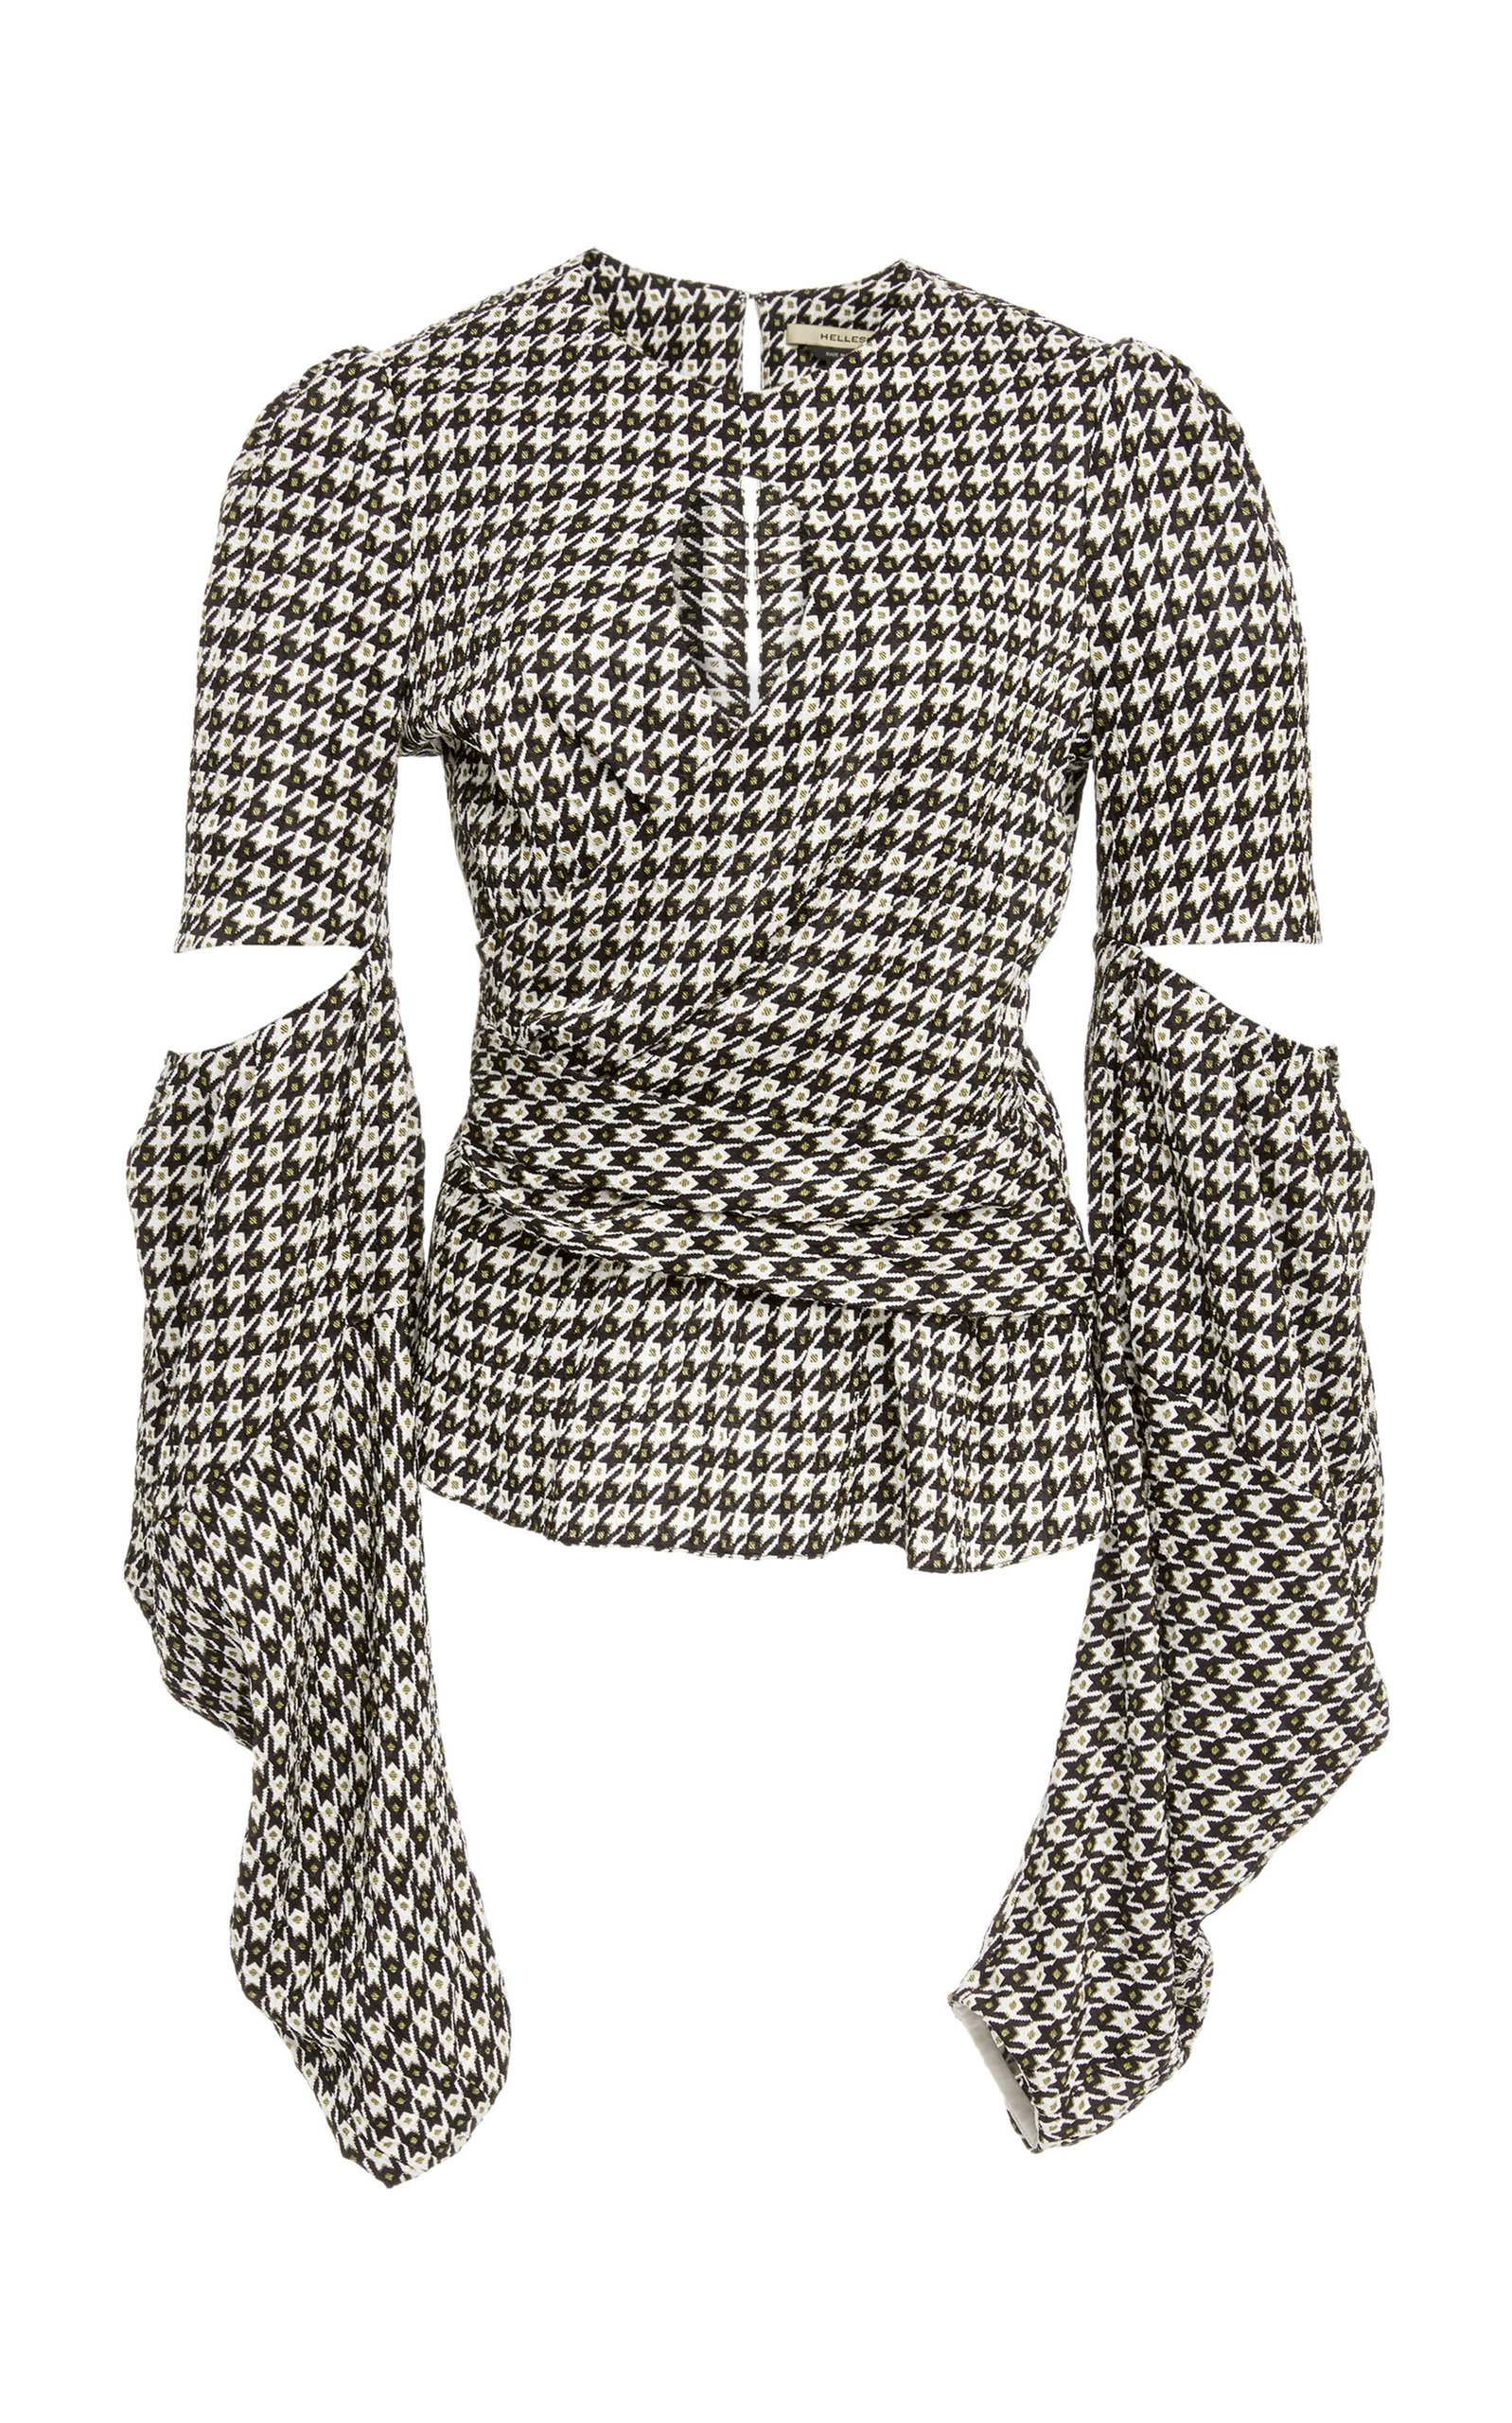 HELLESSY Celeste Cutout Houndstooth Jacquard Blouse in Black/White